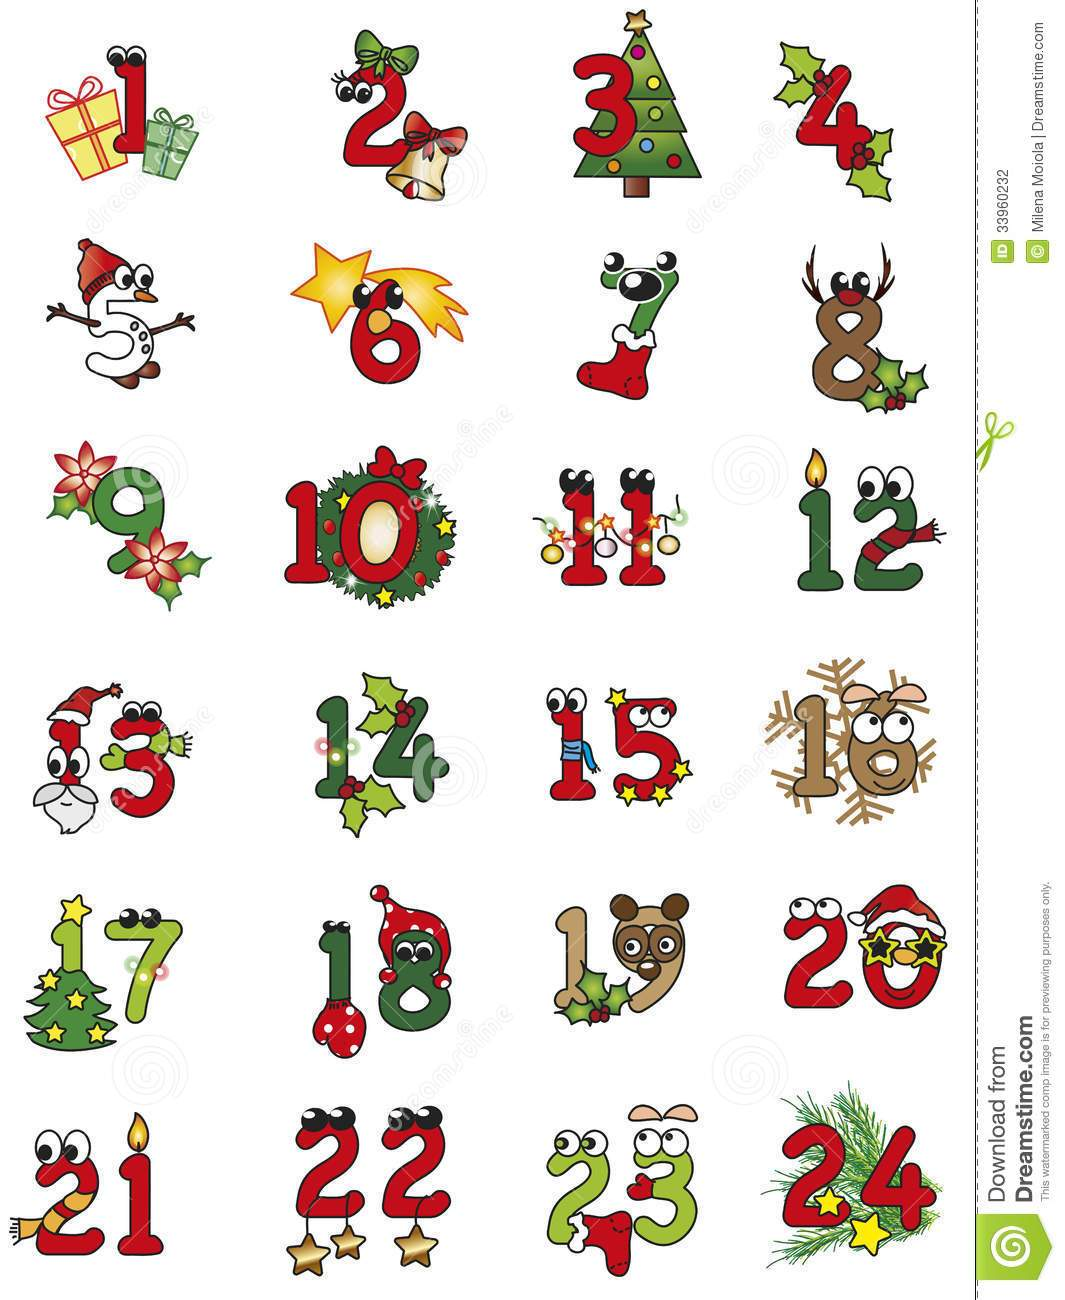 Christmas numbers clipart 6 » Clipart Portal.